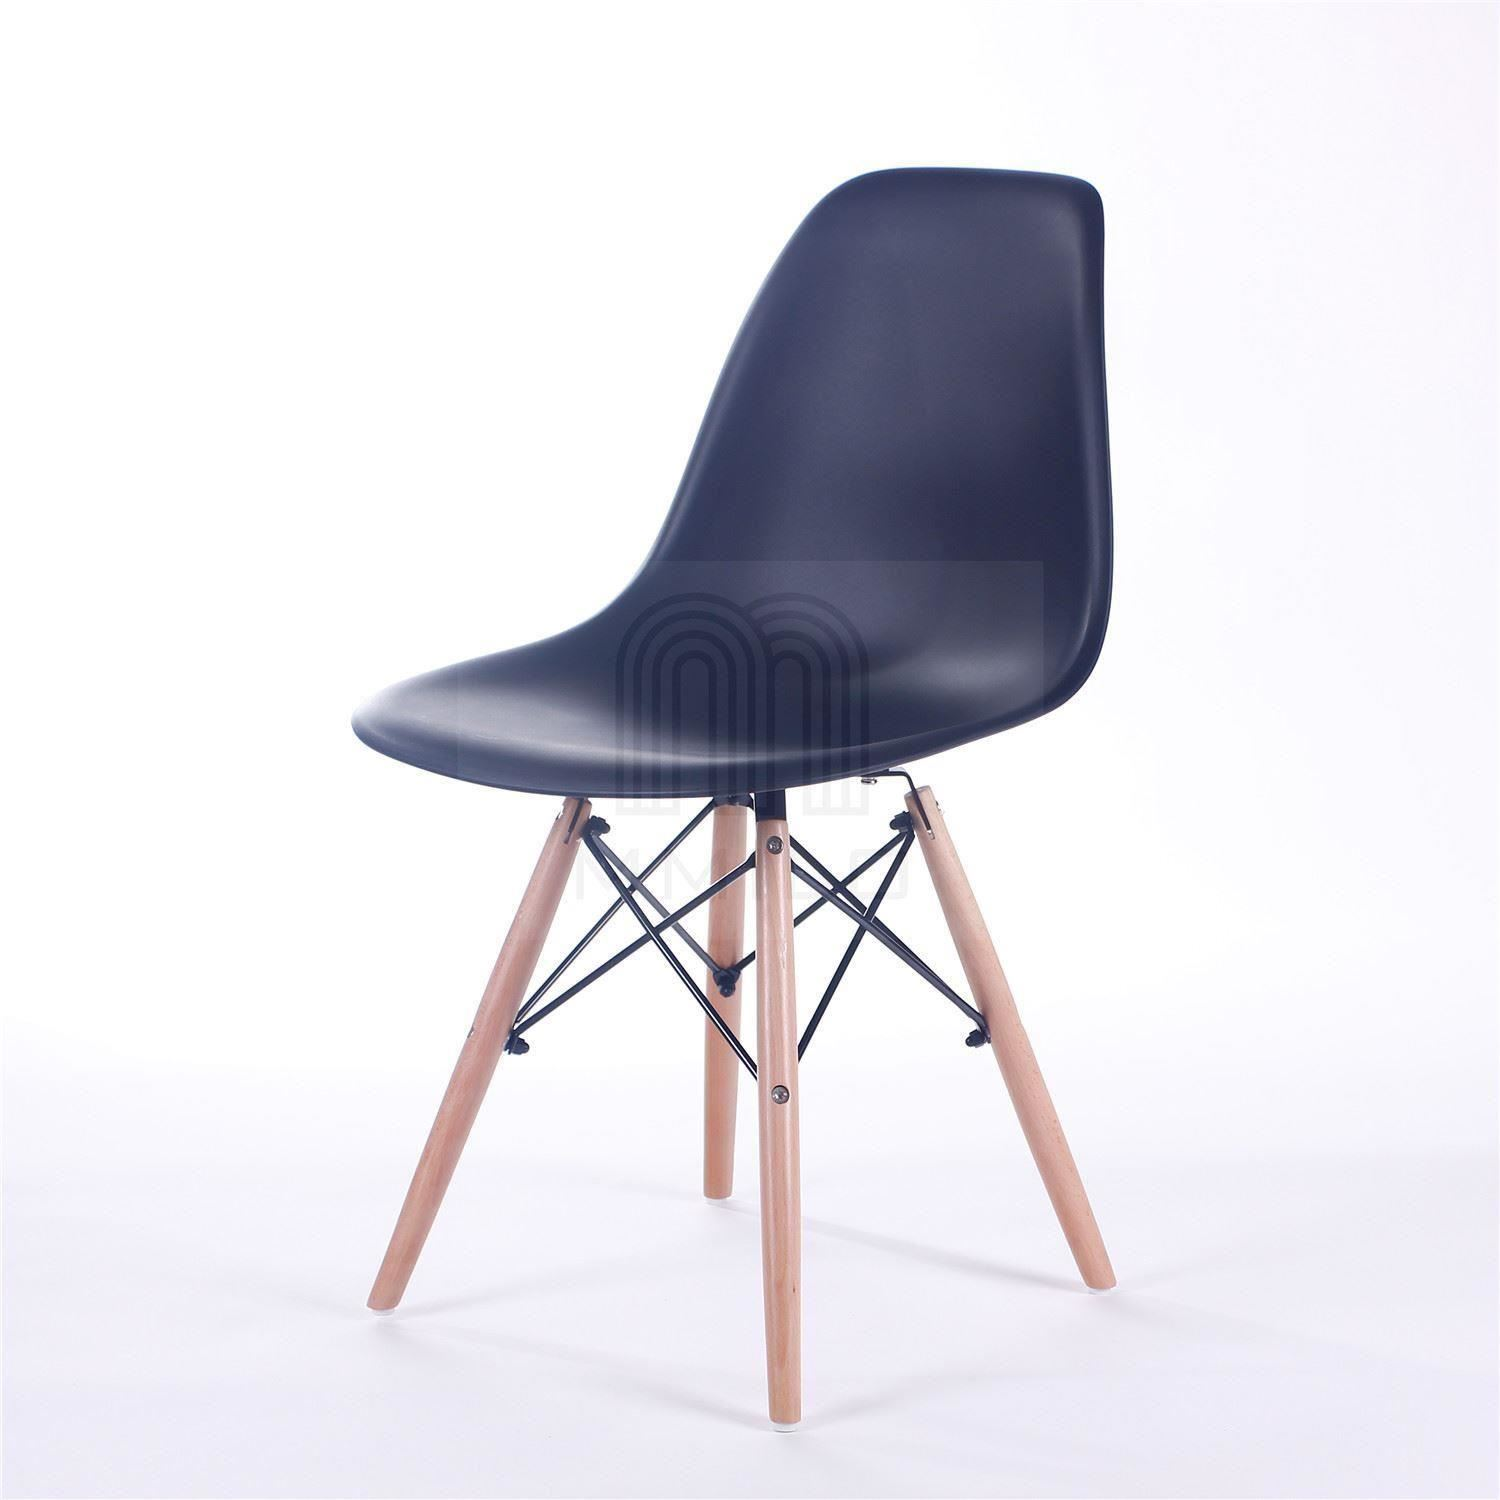 Charles Ray Eames Eiffel Inspired DSW Side Dining Chair Retro